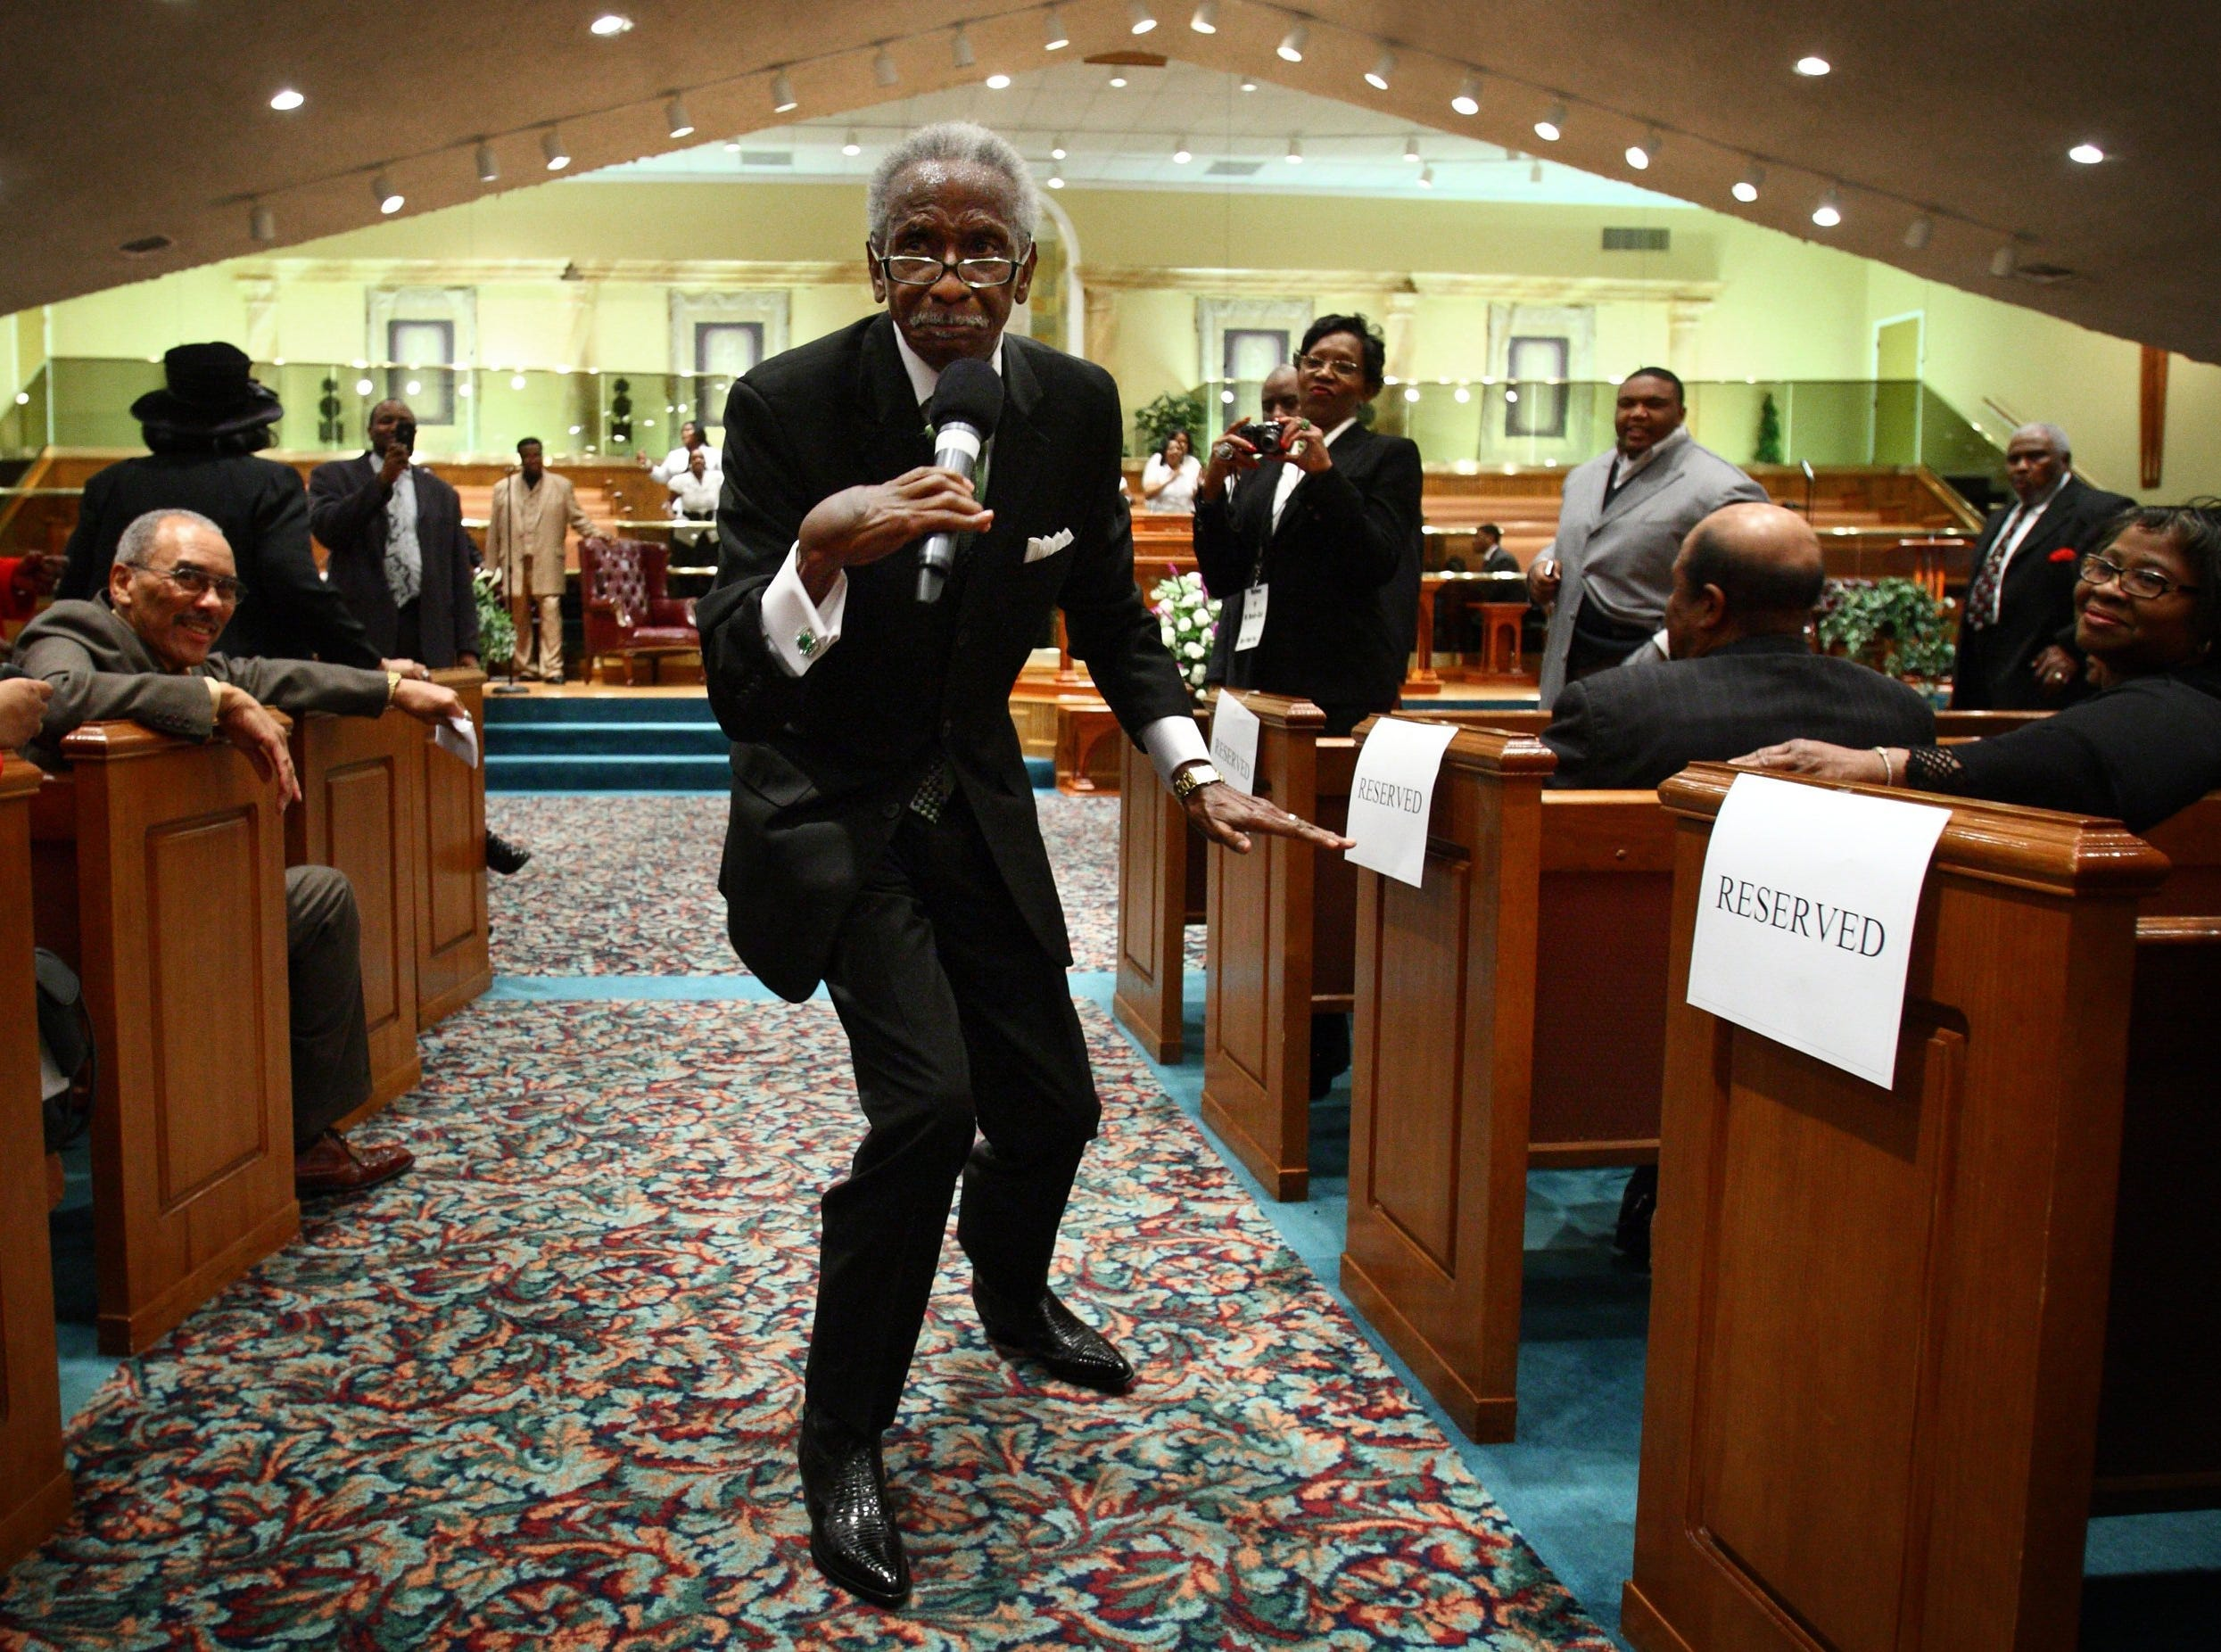 012411  B! Secondary      January 23, 2011 - Pastor Melvin Rogers struts through the isle while singing during the Super Sunday celebration at Mt. Moriah East Baptist Church in Orange Mound. The event included musical performance from local musicians and choirs along with singer Dottie People and speakers including Rev. Al Sharpton. (Mike Brown/The Commercial Appeal)